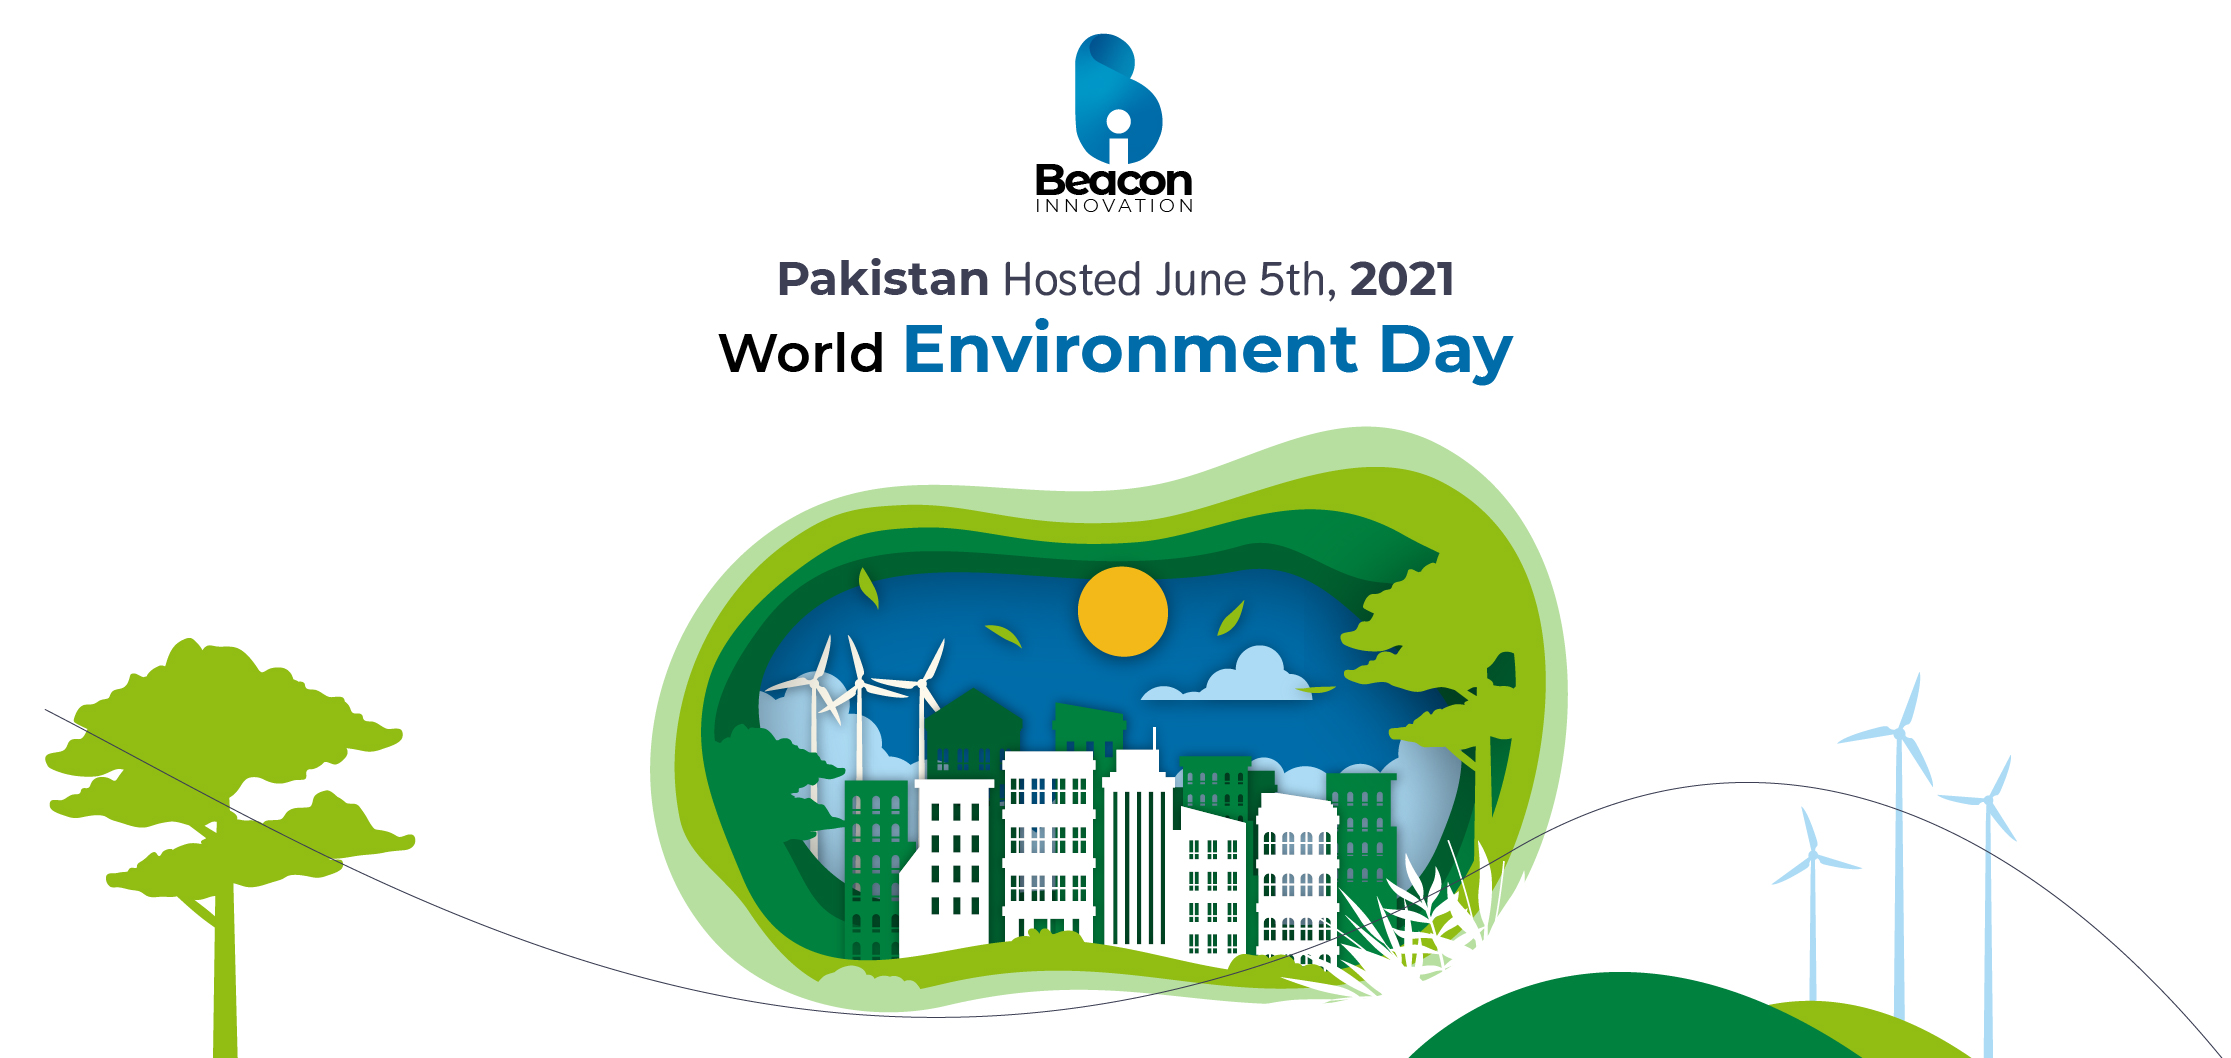 Pakistan Hosted World Environment Day 2021